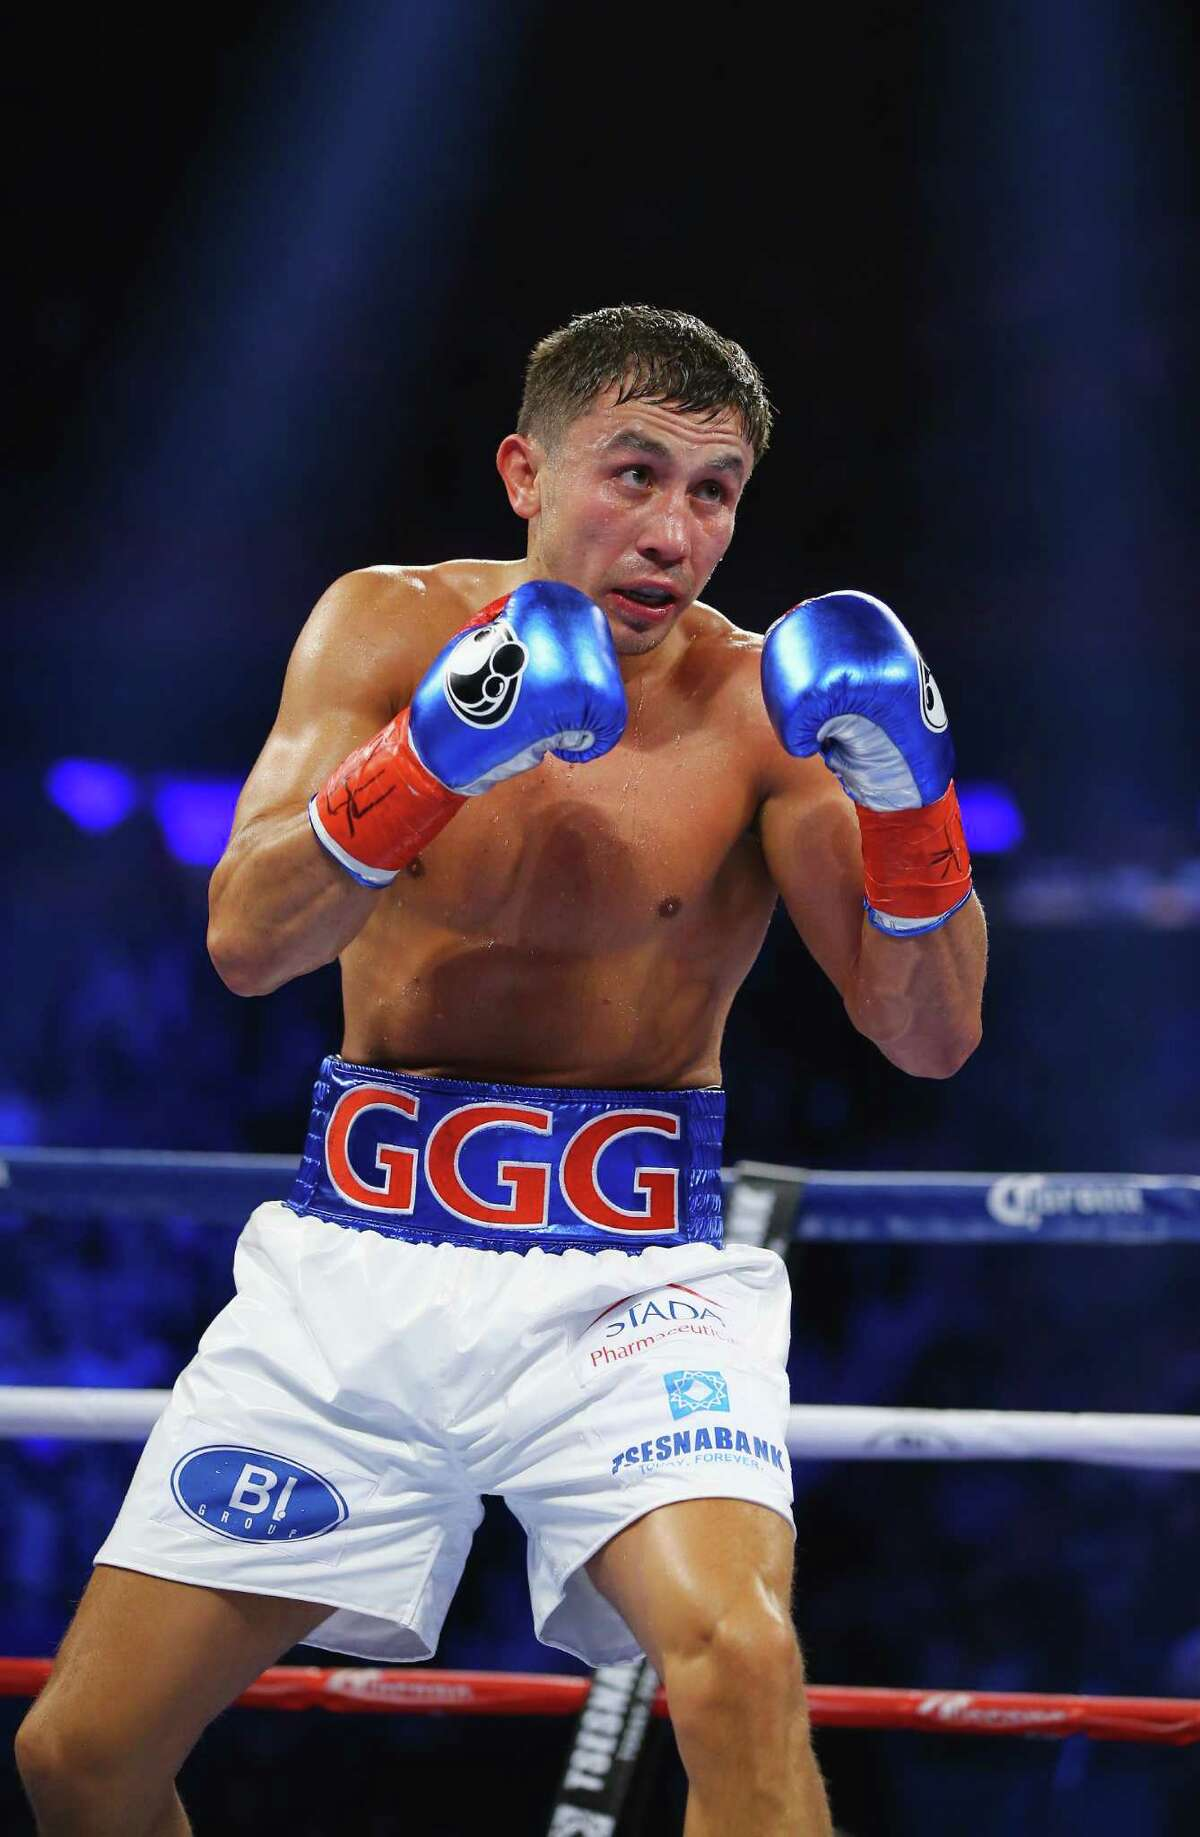 NEW YORK, NY - OCTOBER 17: Gennady Golovkin fights David Lemieux during their WBA/WBC interim/IBF middleweight title unification bout at Madison Square Garden on October 17, 2015 in New York City. (Photo by Al Bello/Getty Images) ORG XMIT: 567656971